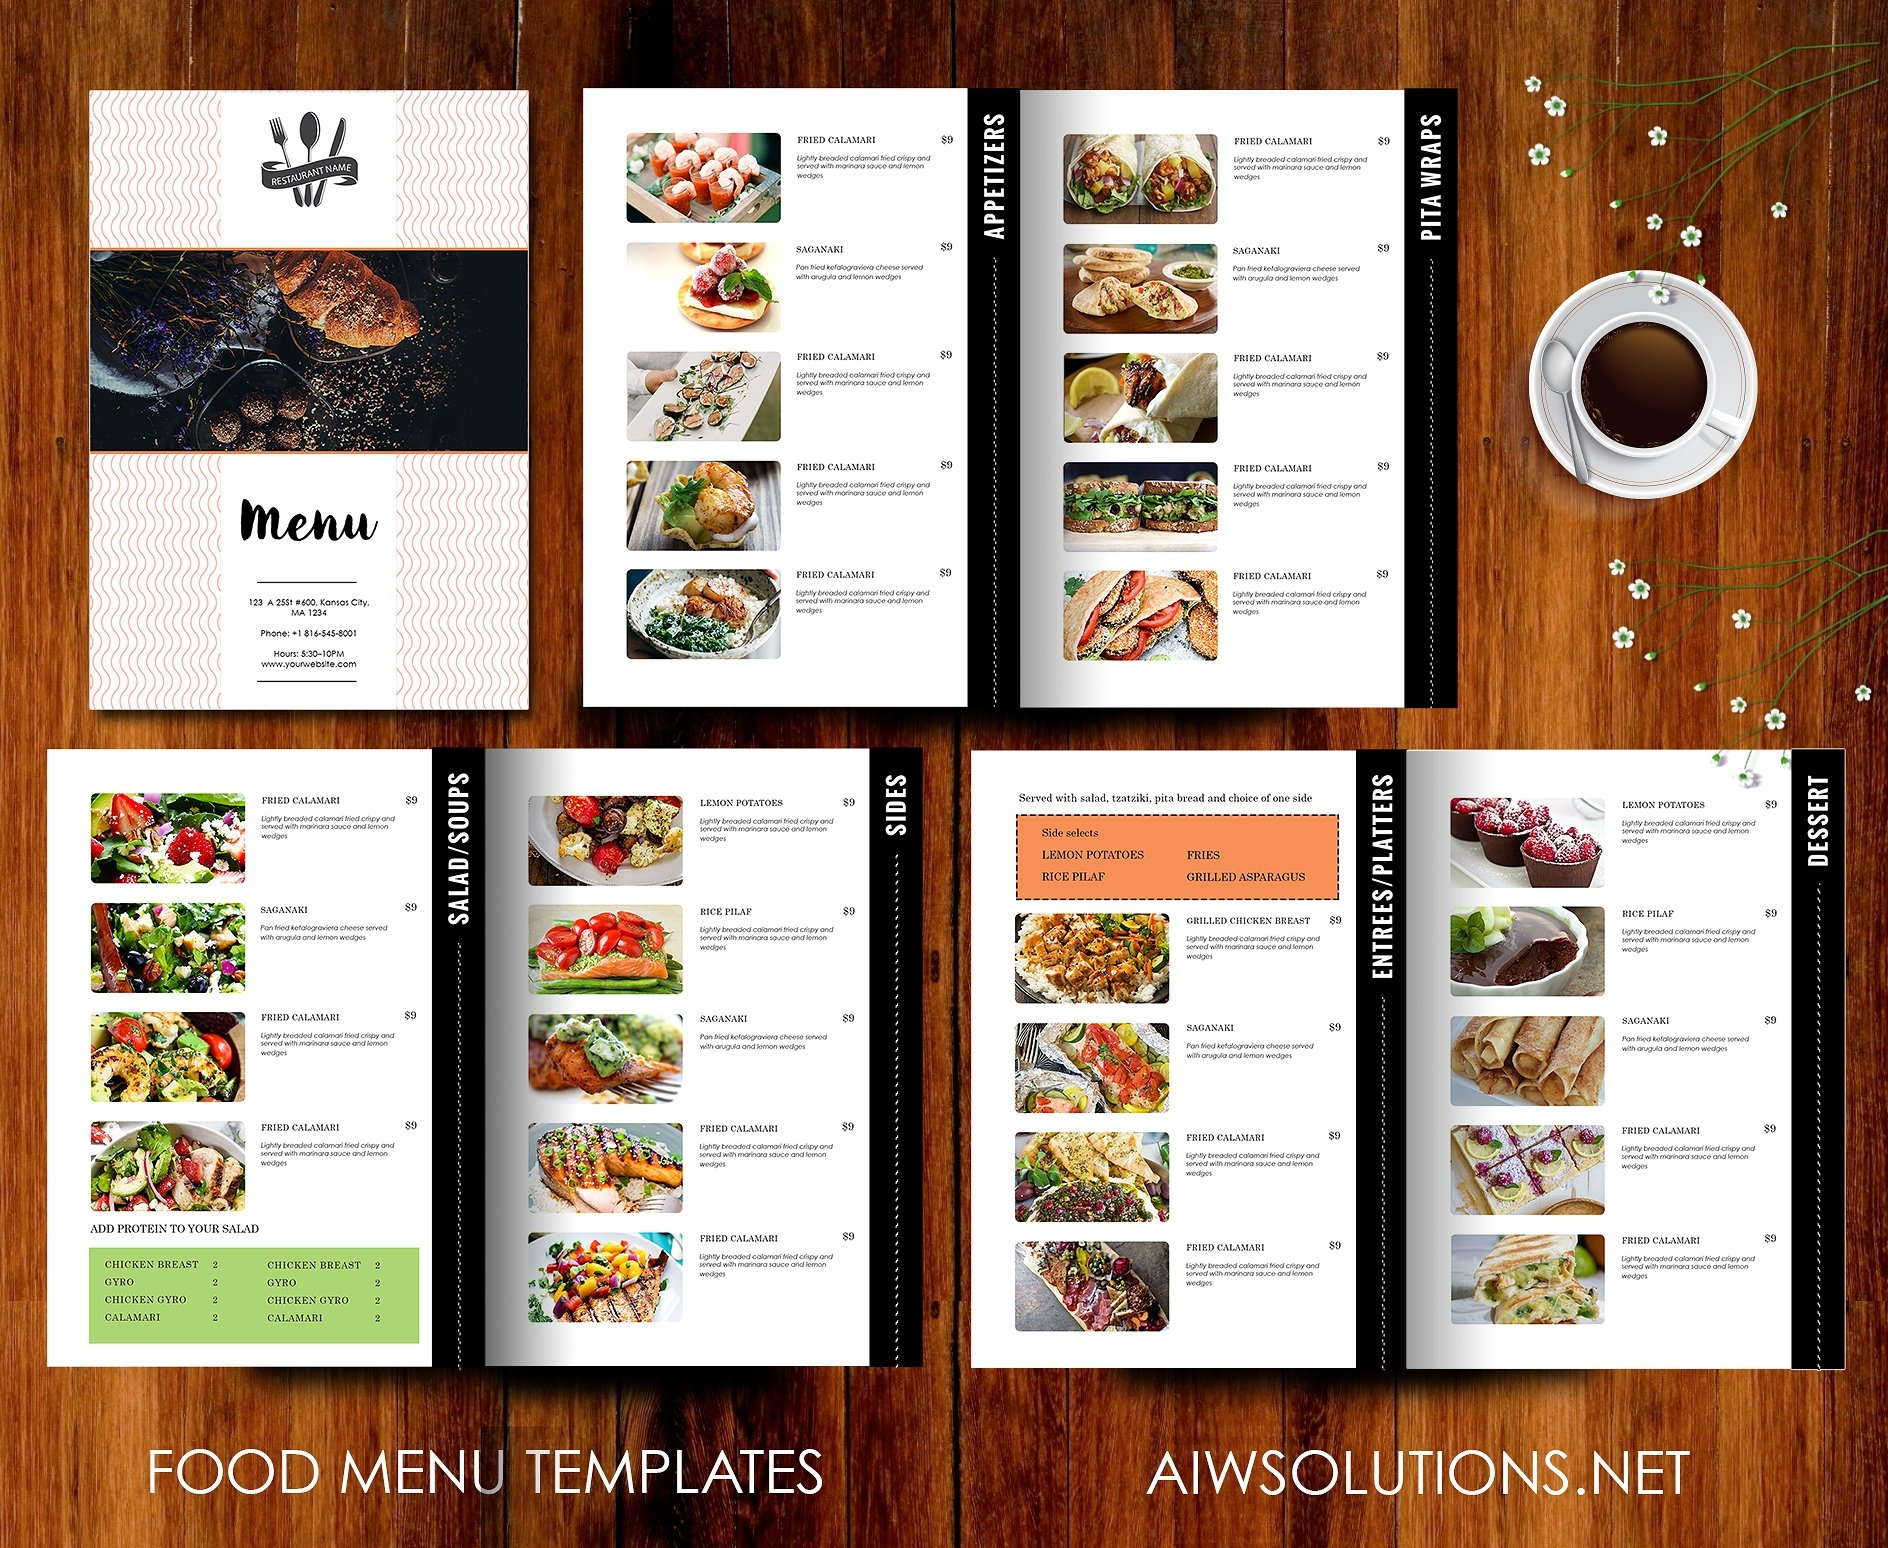 Essential restaurant menu design tips